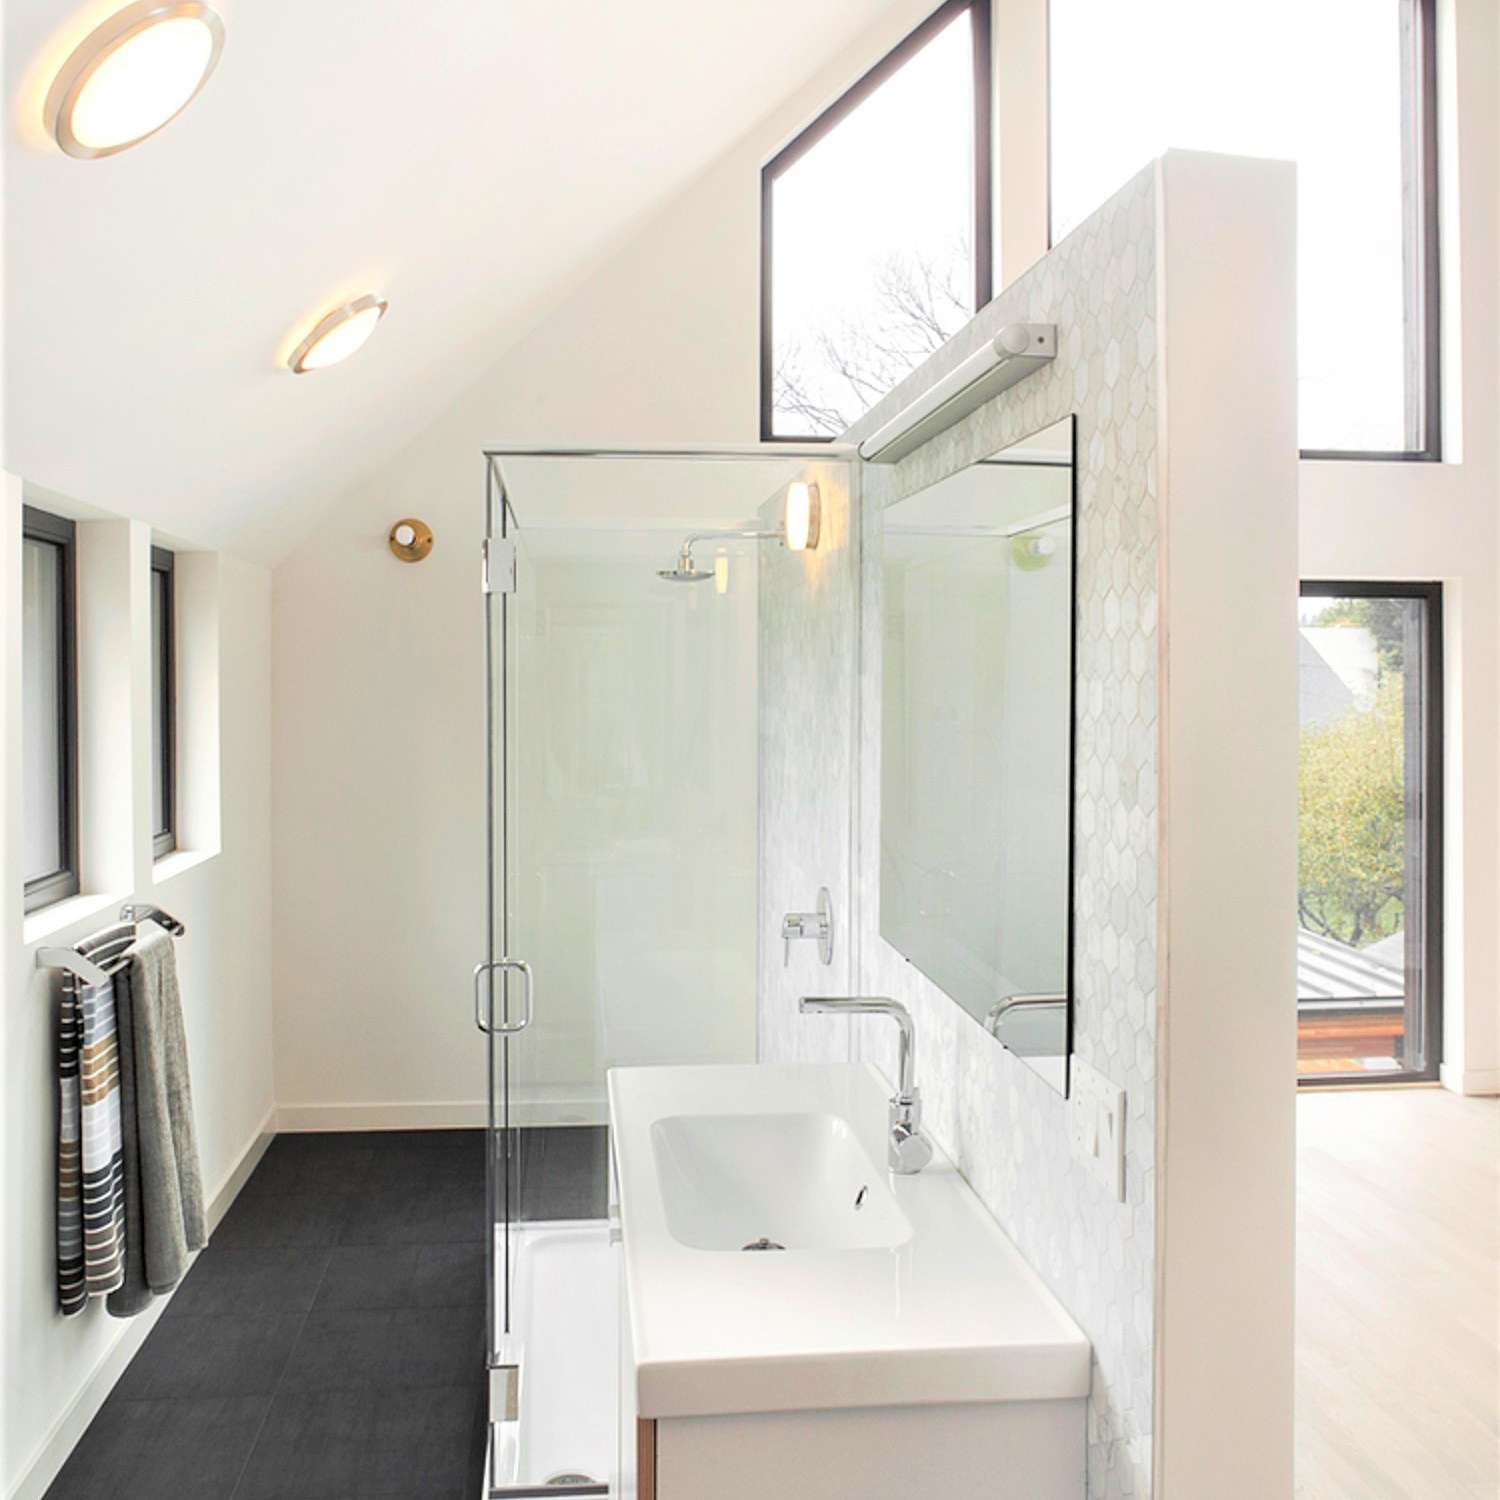 Spacious Open-Air Shower for Bathroom Remodel